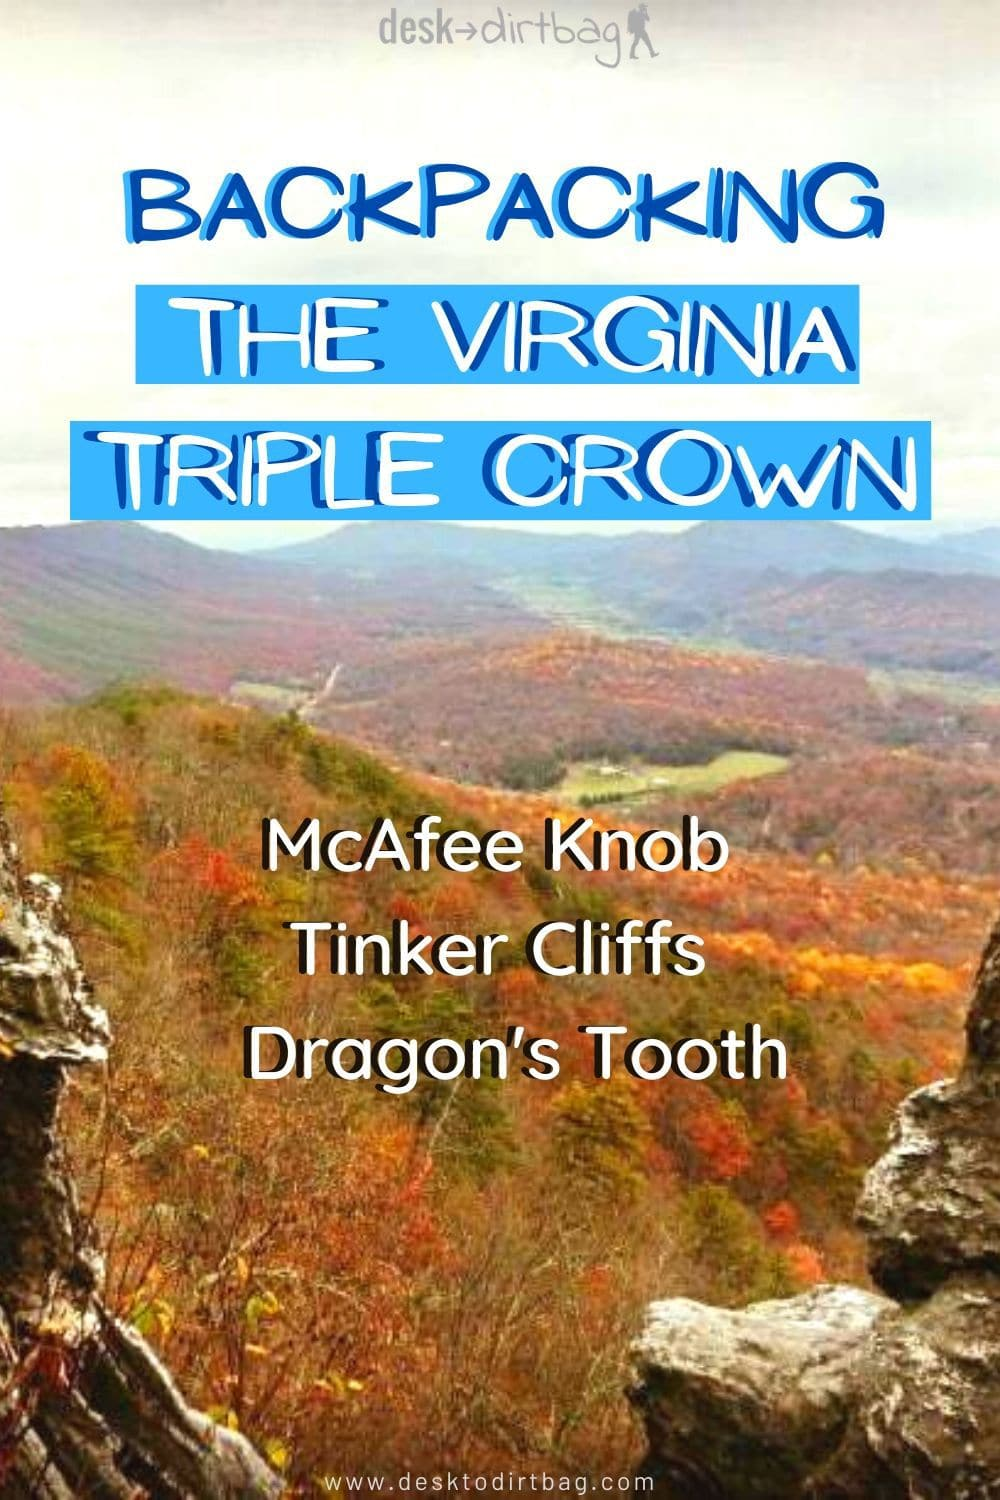 Backpacking the Virginia Triple Crown: McAfee Knob, Tinker Cliffs, and Dragon's Tooth trip-reports, backpacking